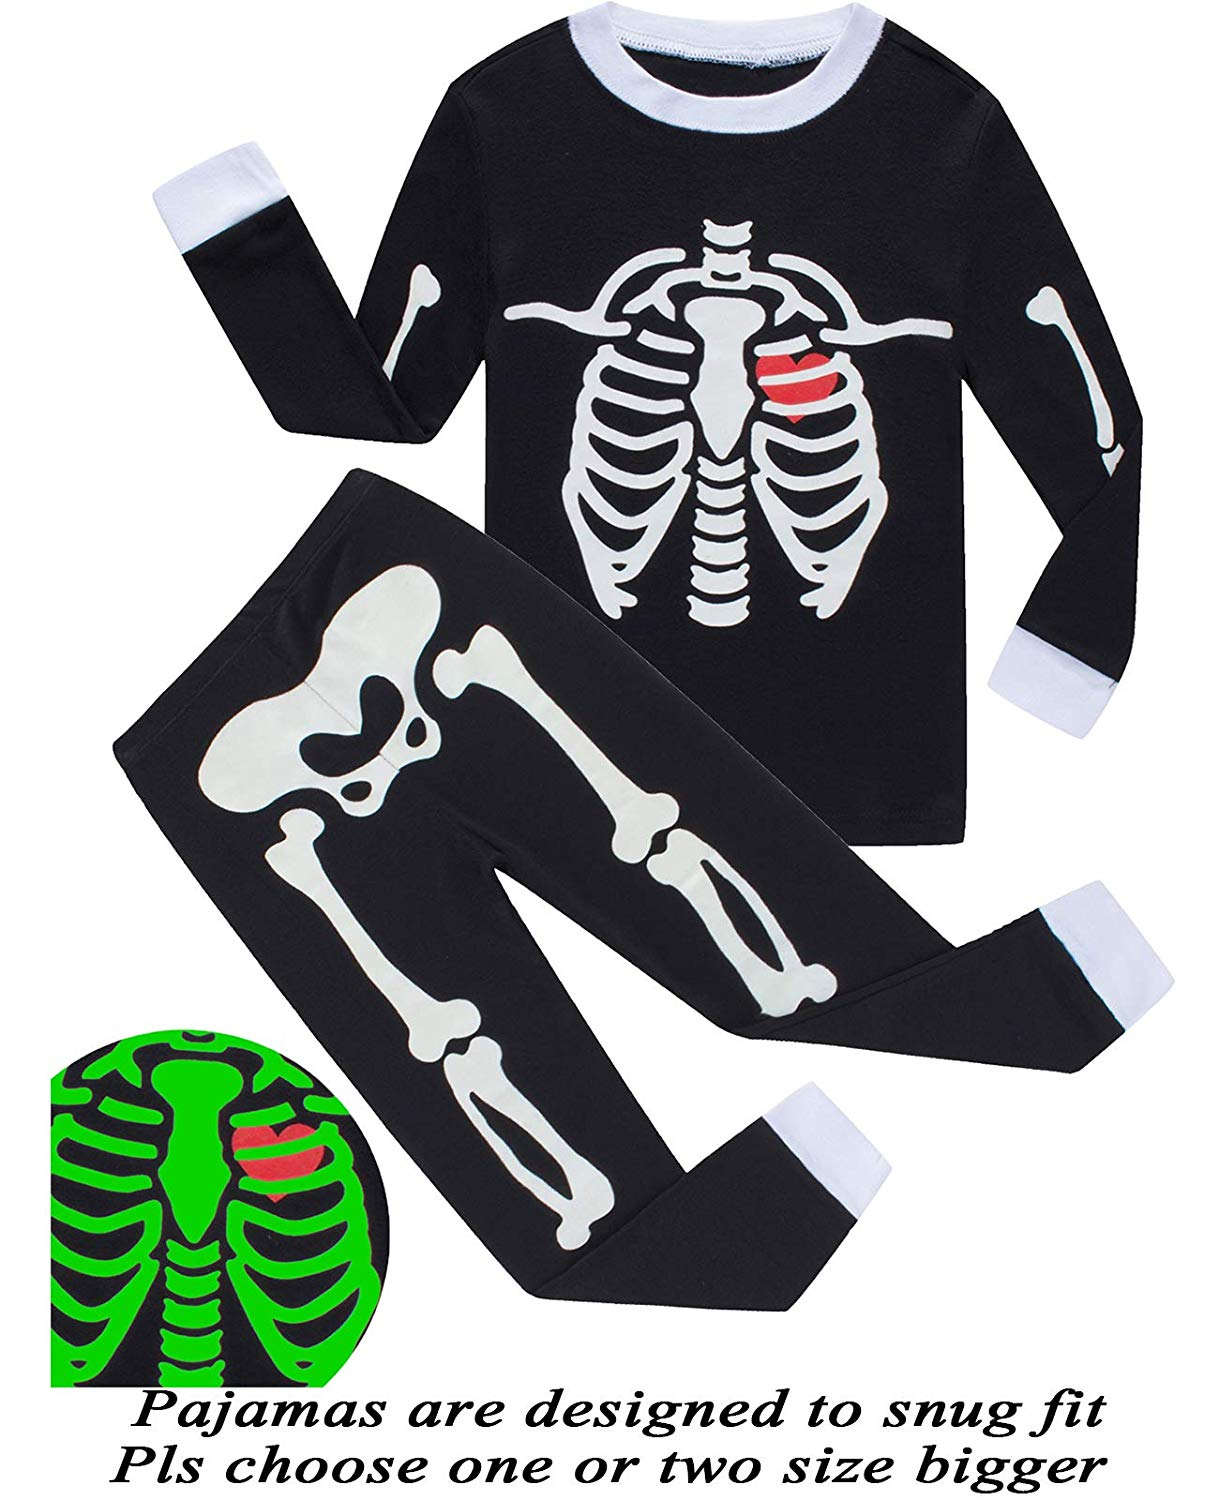 b316dd4550e Get Quotations · Dolphin Fish Boys Halloween Pajamas Kids Skeleton Pjs  Toddler Sleepwear Halloween Clothes